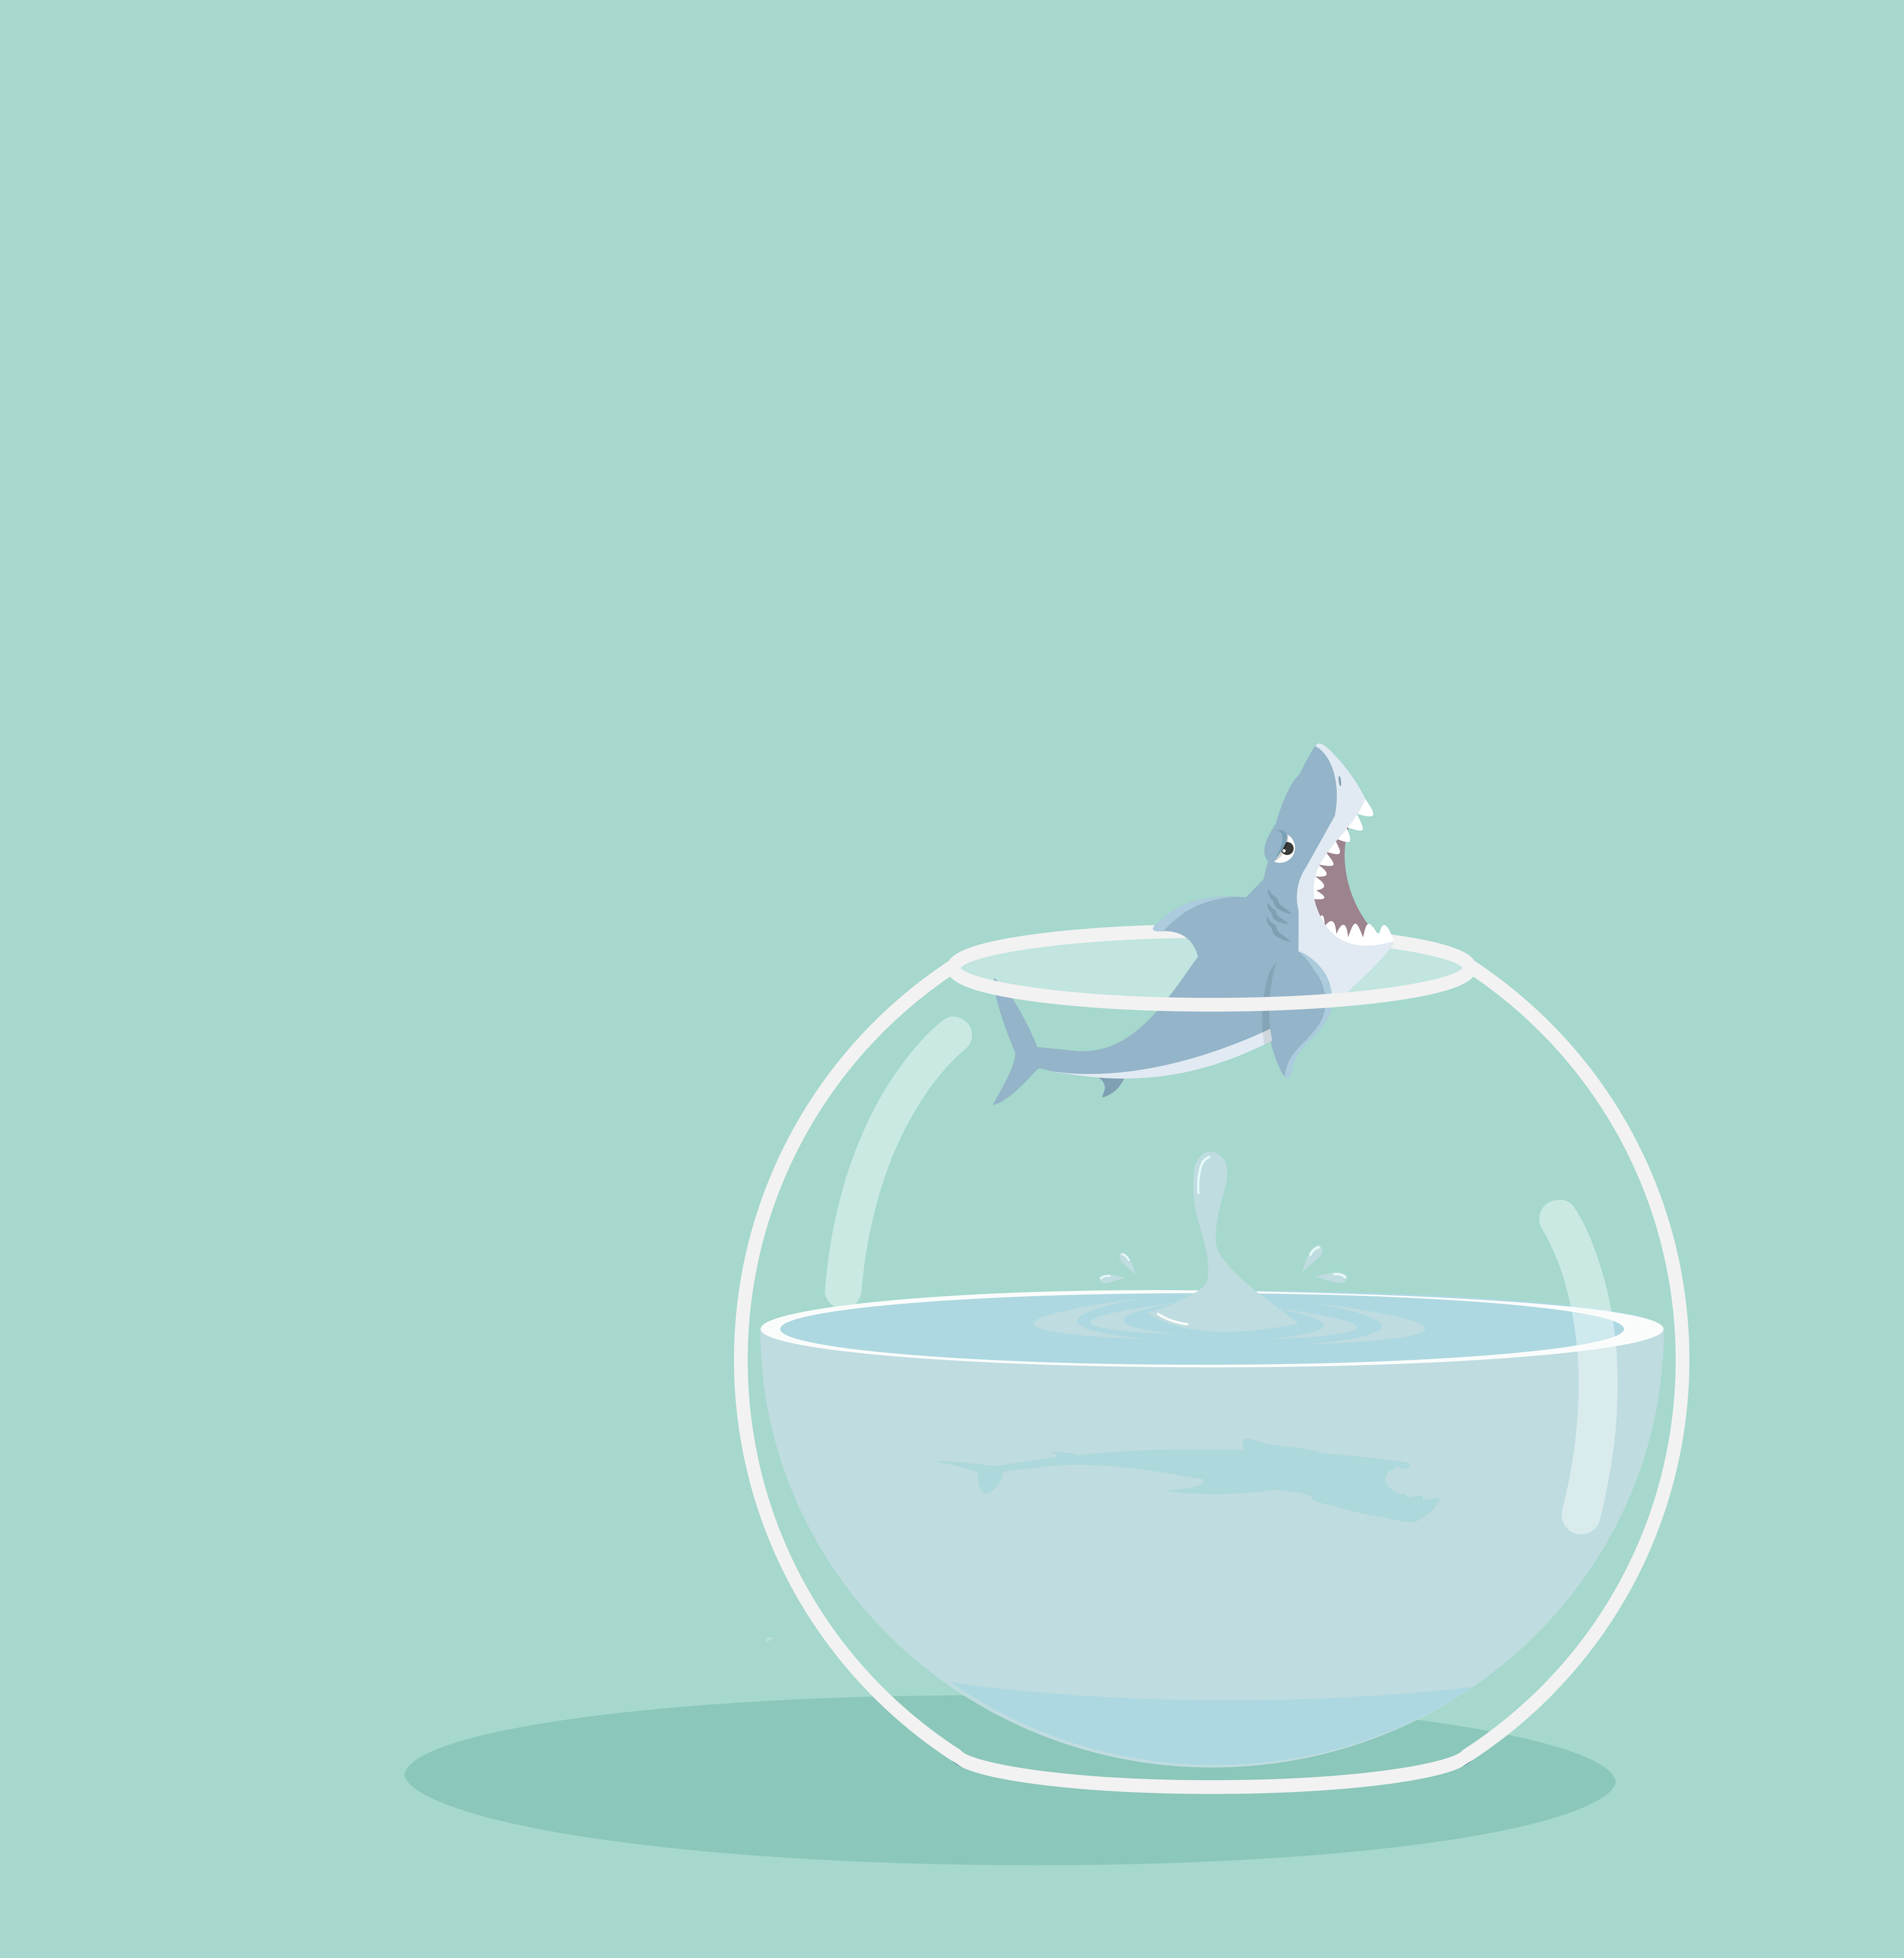 shark jumping out of fishbowl vector - Download Free Vector